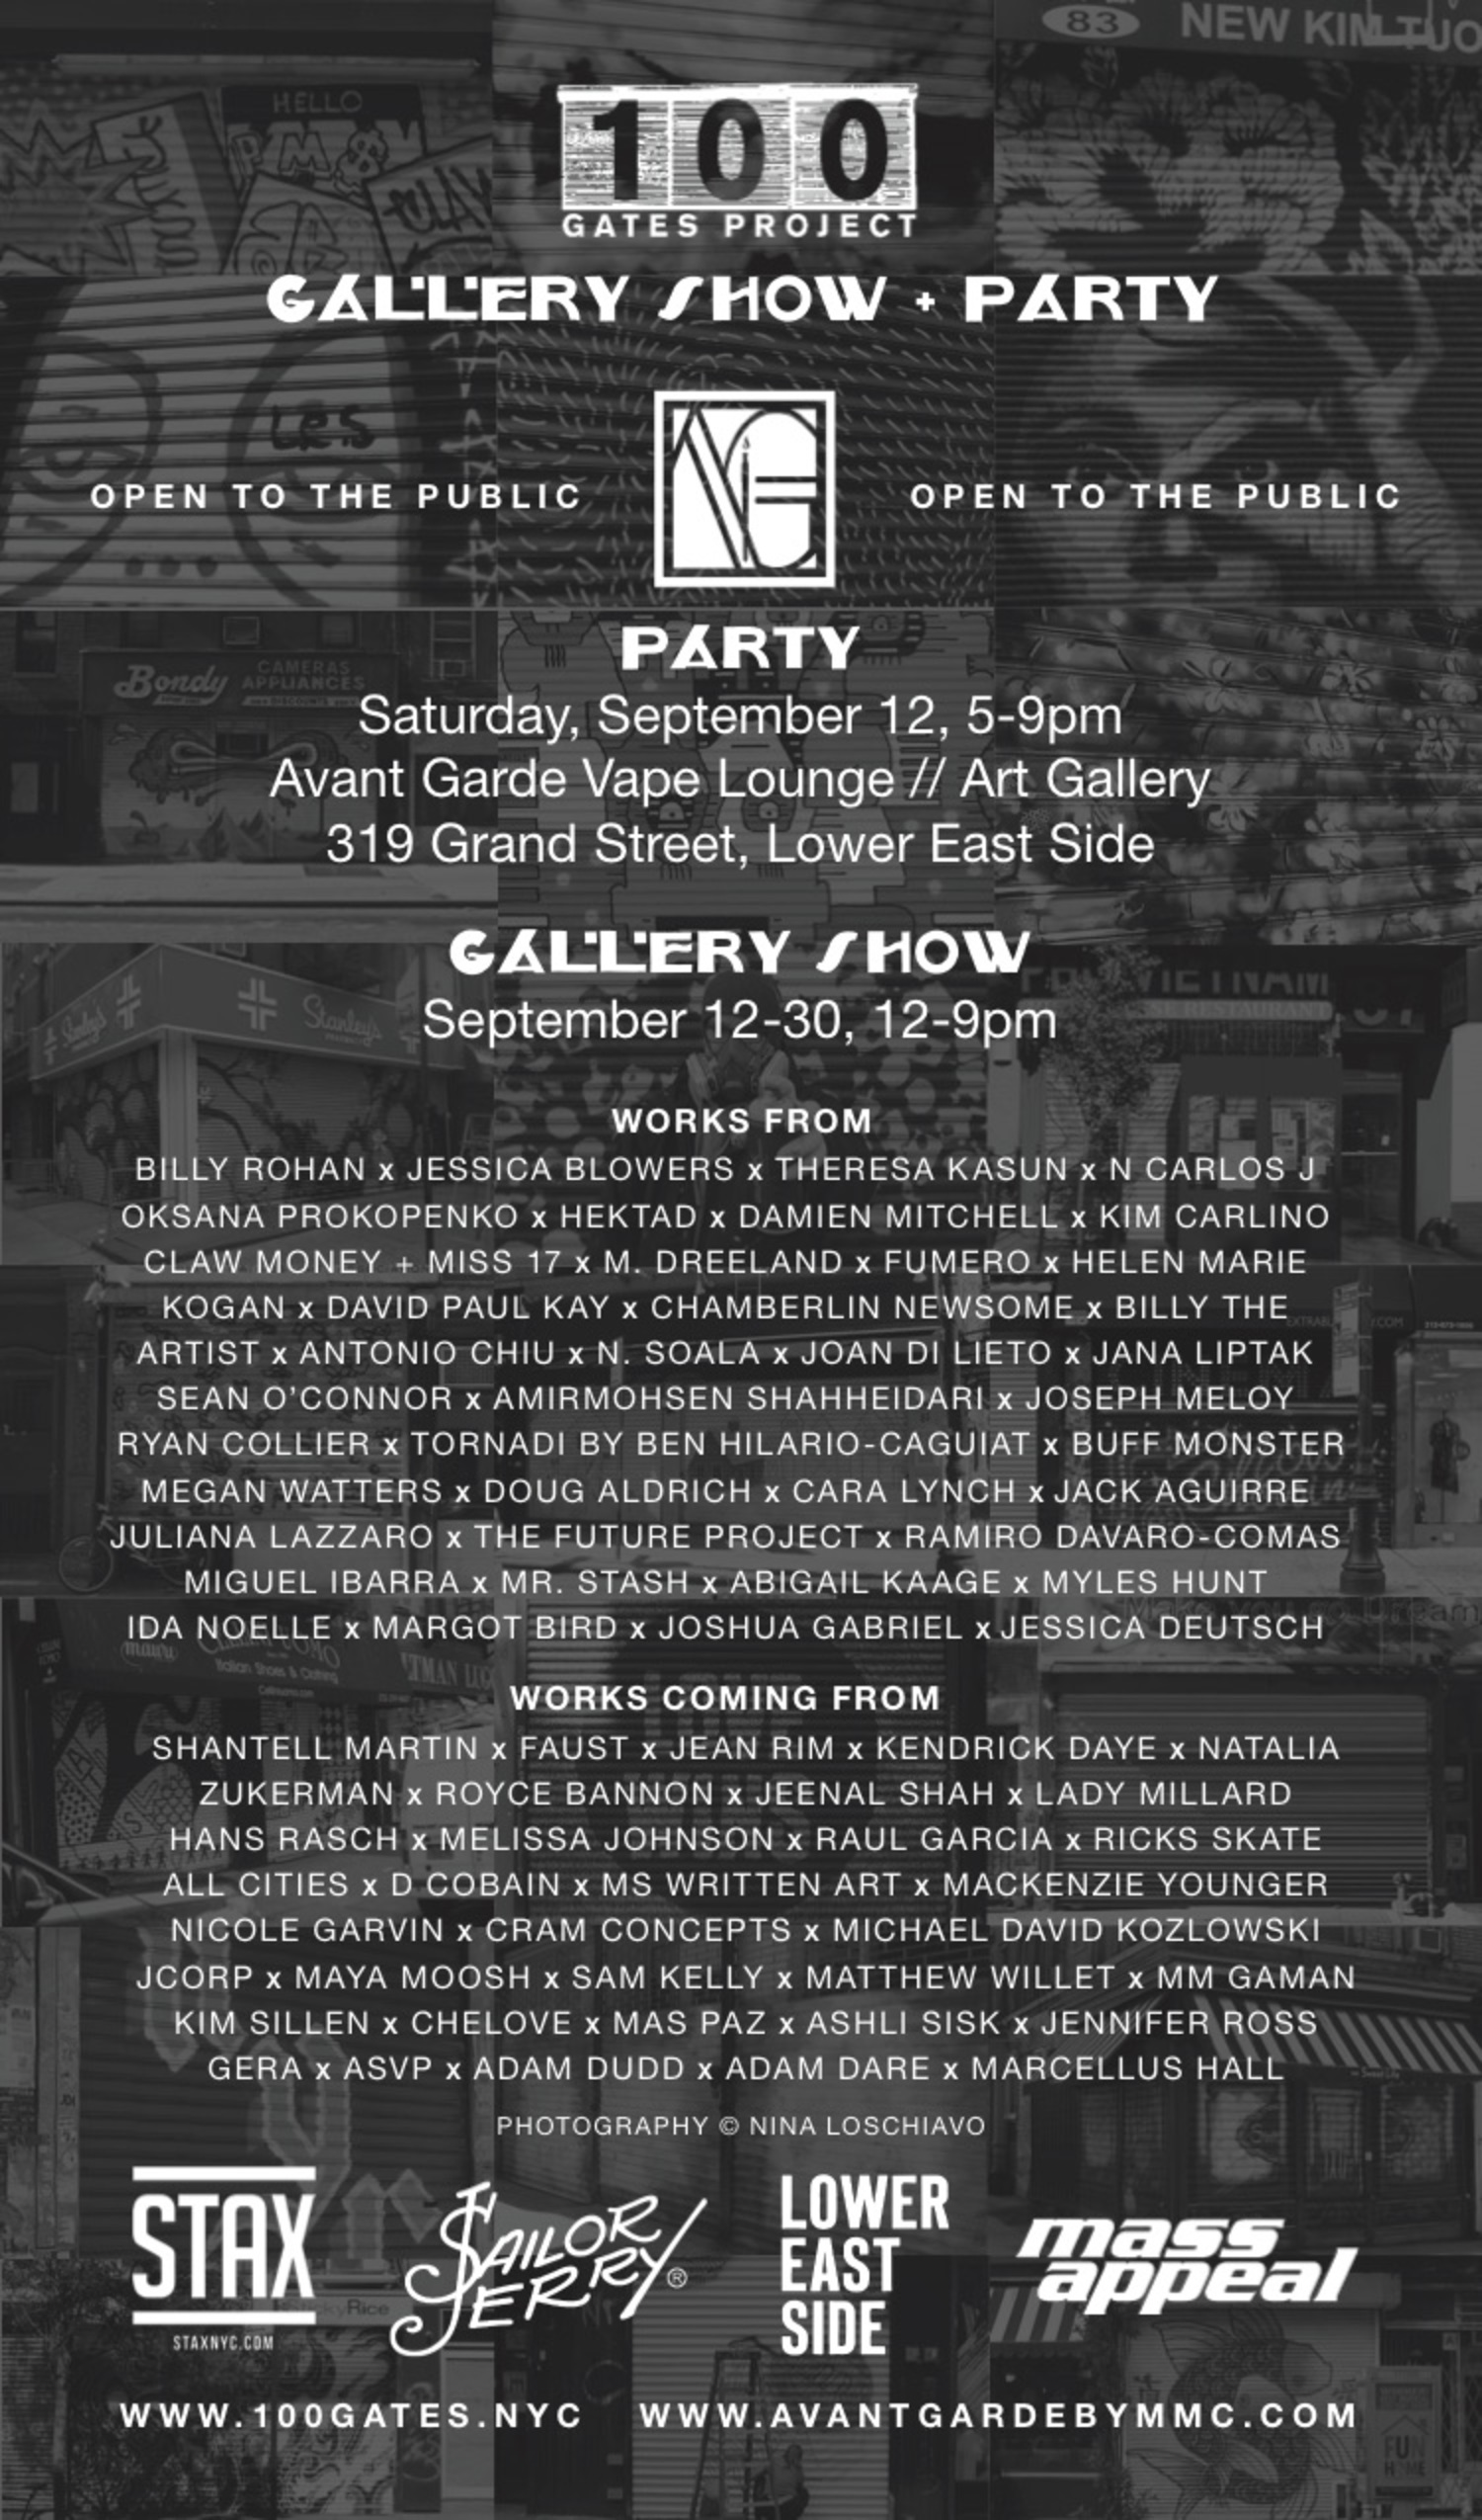 100 Gates Project Gallery Show & Party